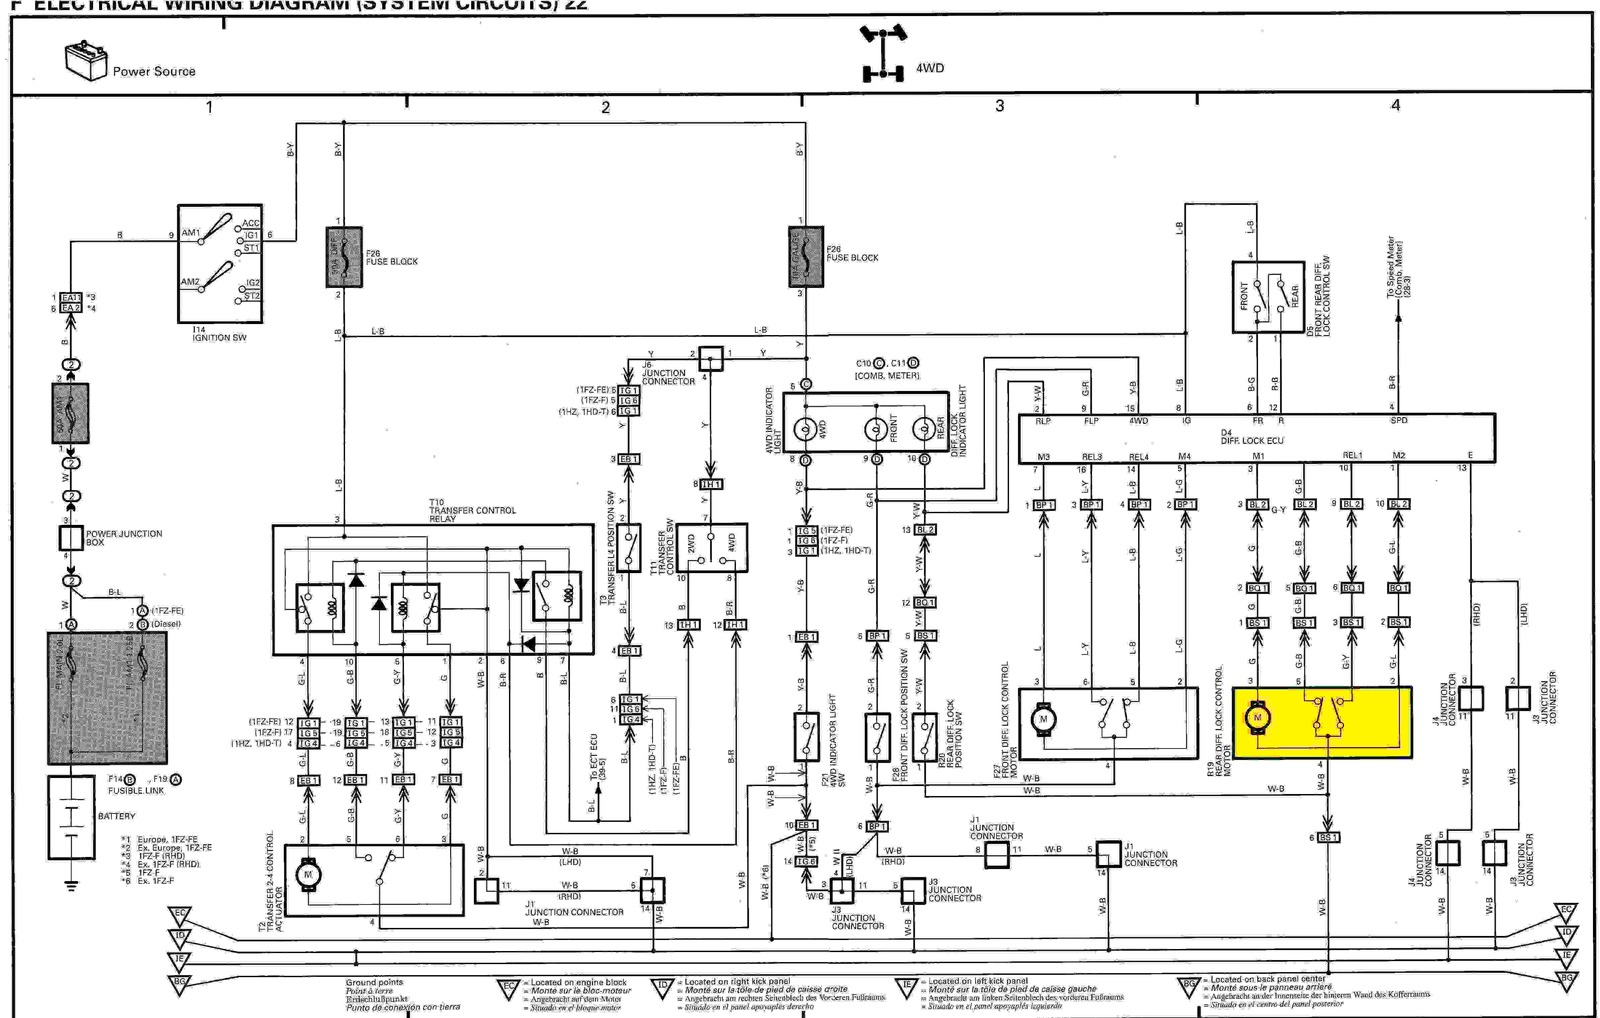 1hd fte wiring diagram toyota landcruiser 80 series wiring diagram toyota land cruiser wiring diagram at panicattacktreatment.co